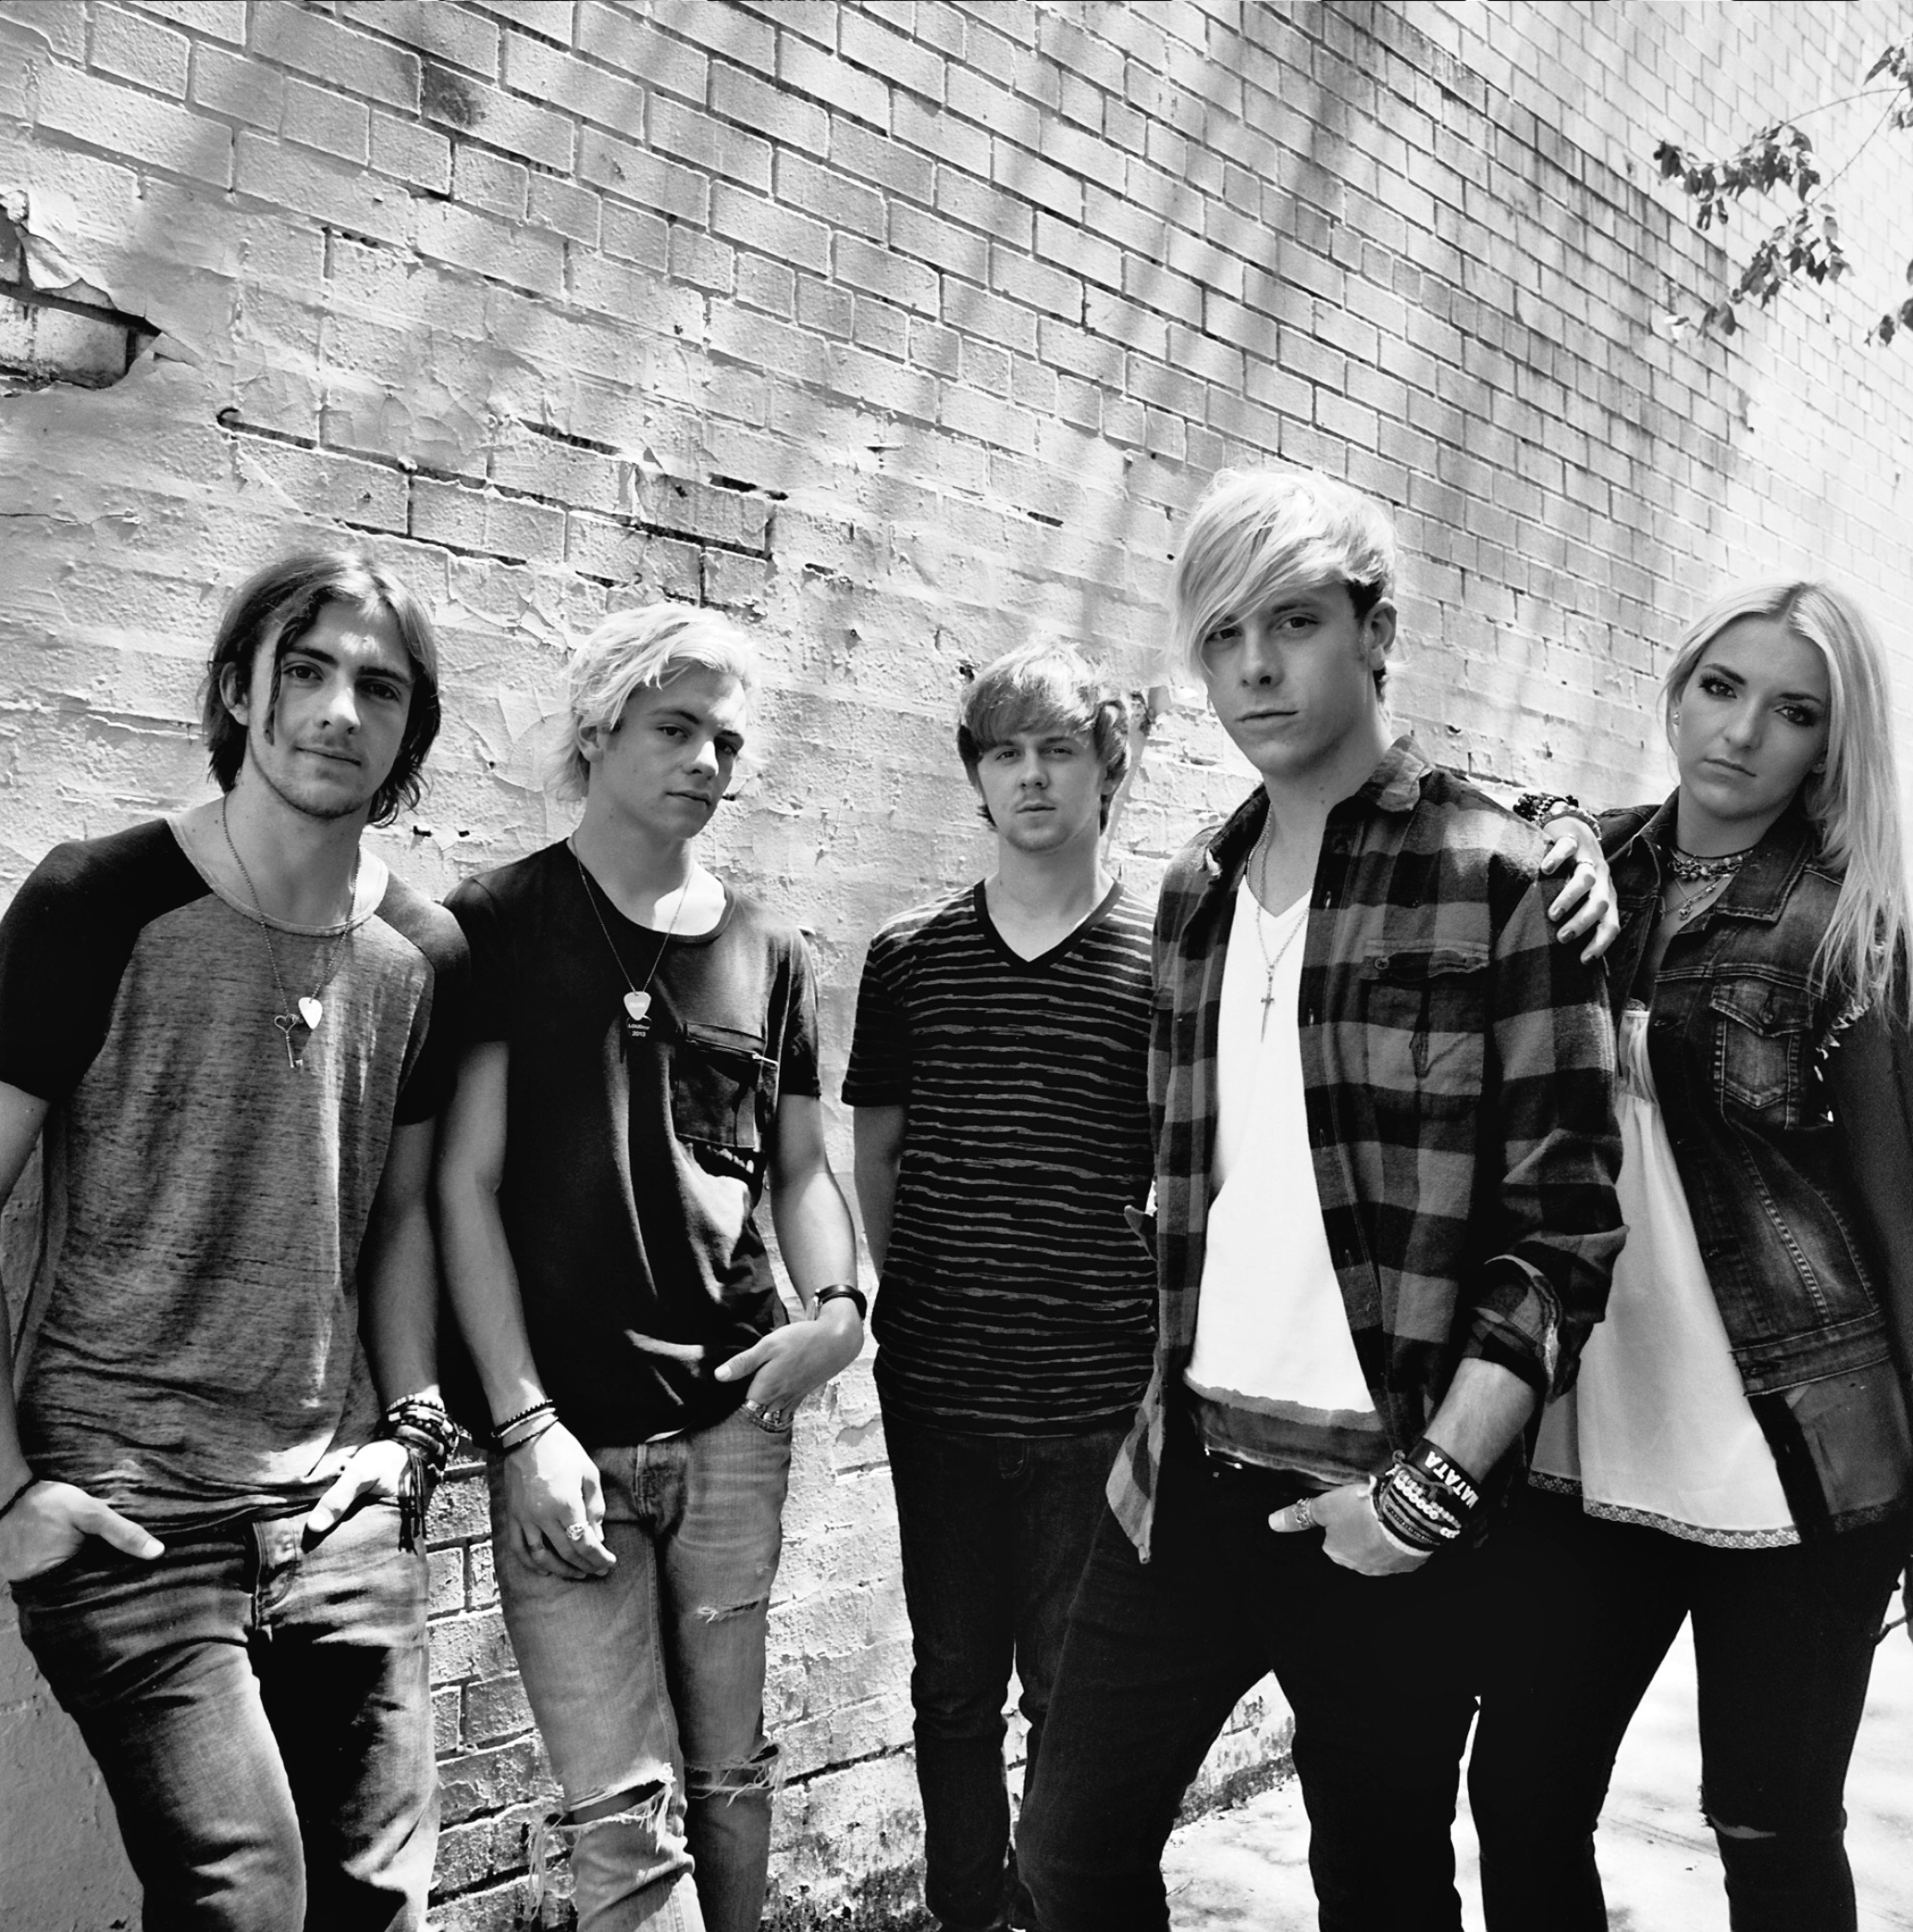 Weve got our iheart made up oni r5s new ep girlslife weve got our heart made up on r5s new ep kristyandbryce Images